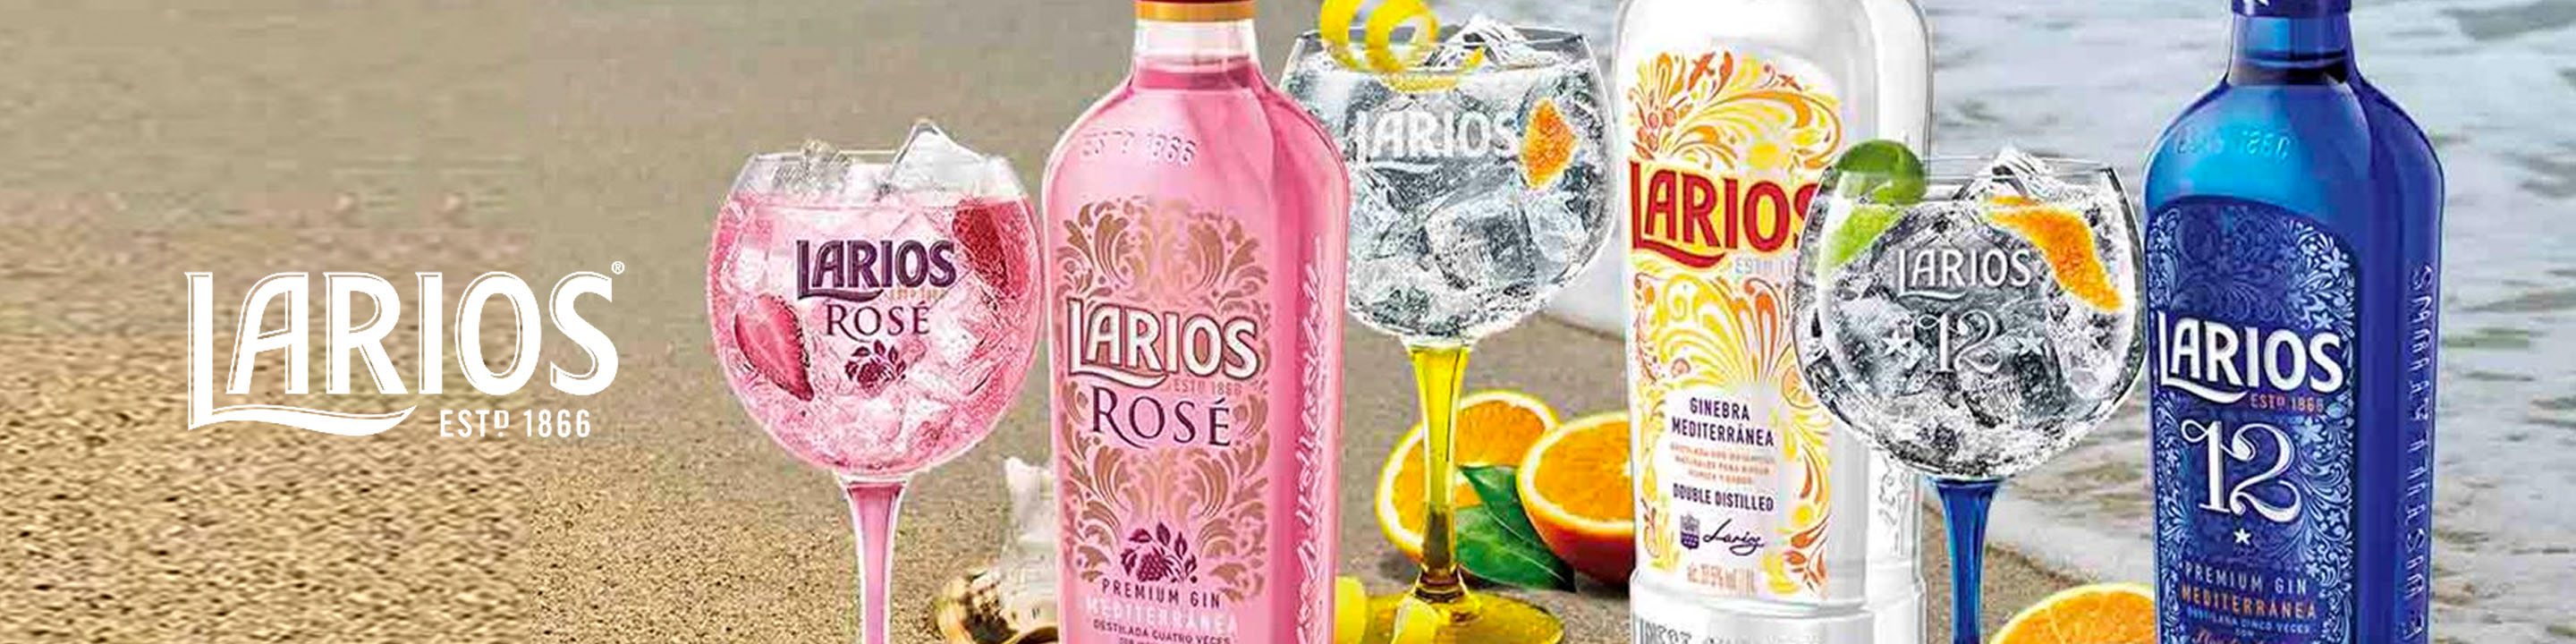 Larios undergoes double distillation and is characterized by clarity, freshness of aroma and delicate citrus flavor.  Buy Larios online now from nearby liquor stores via Minibar Delivery.